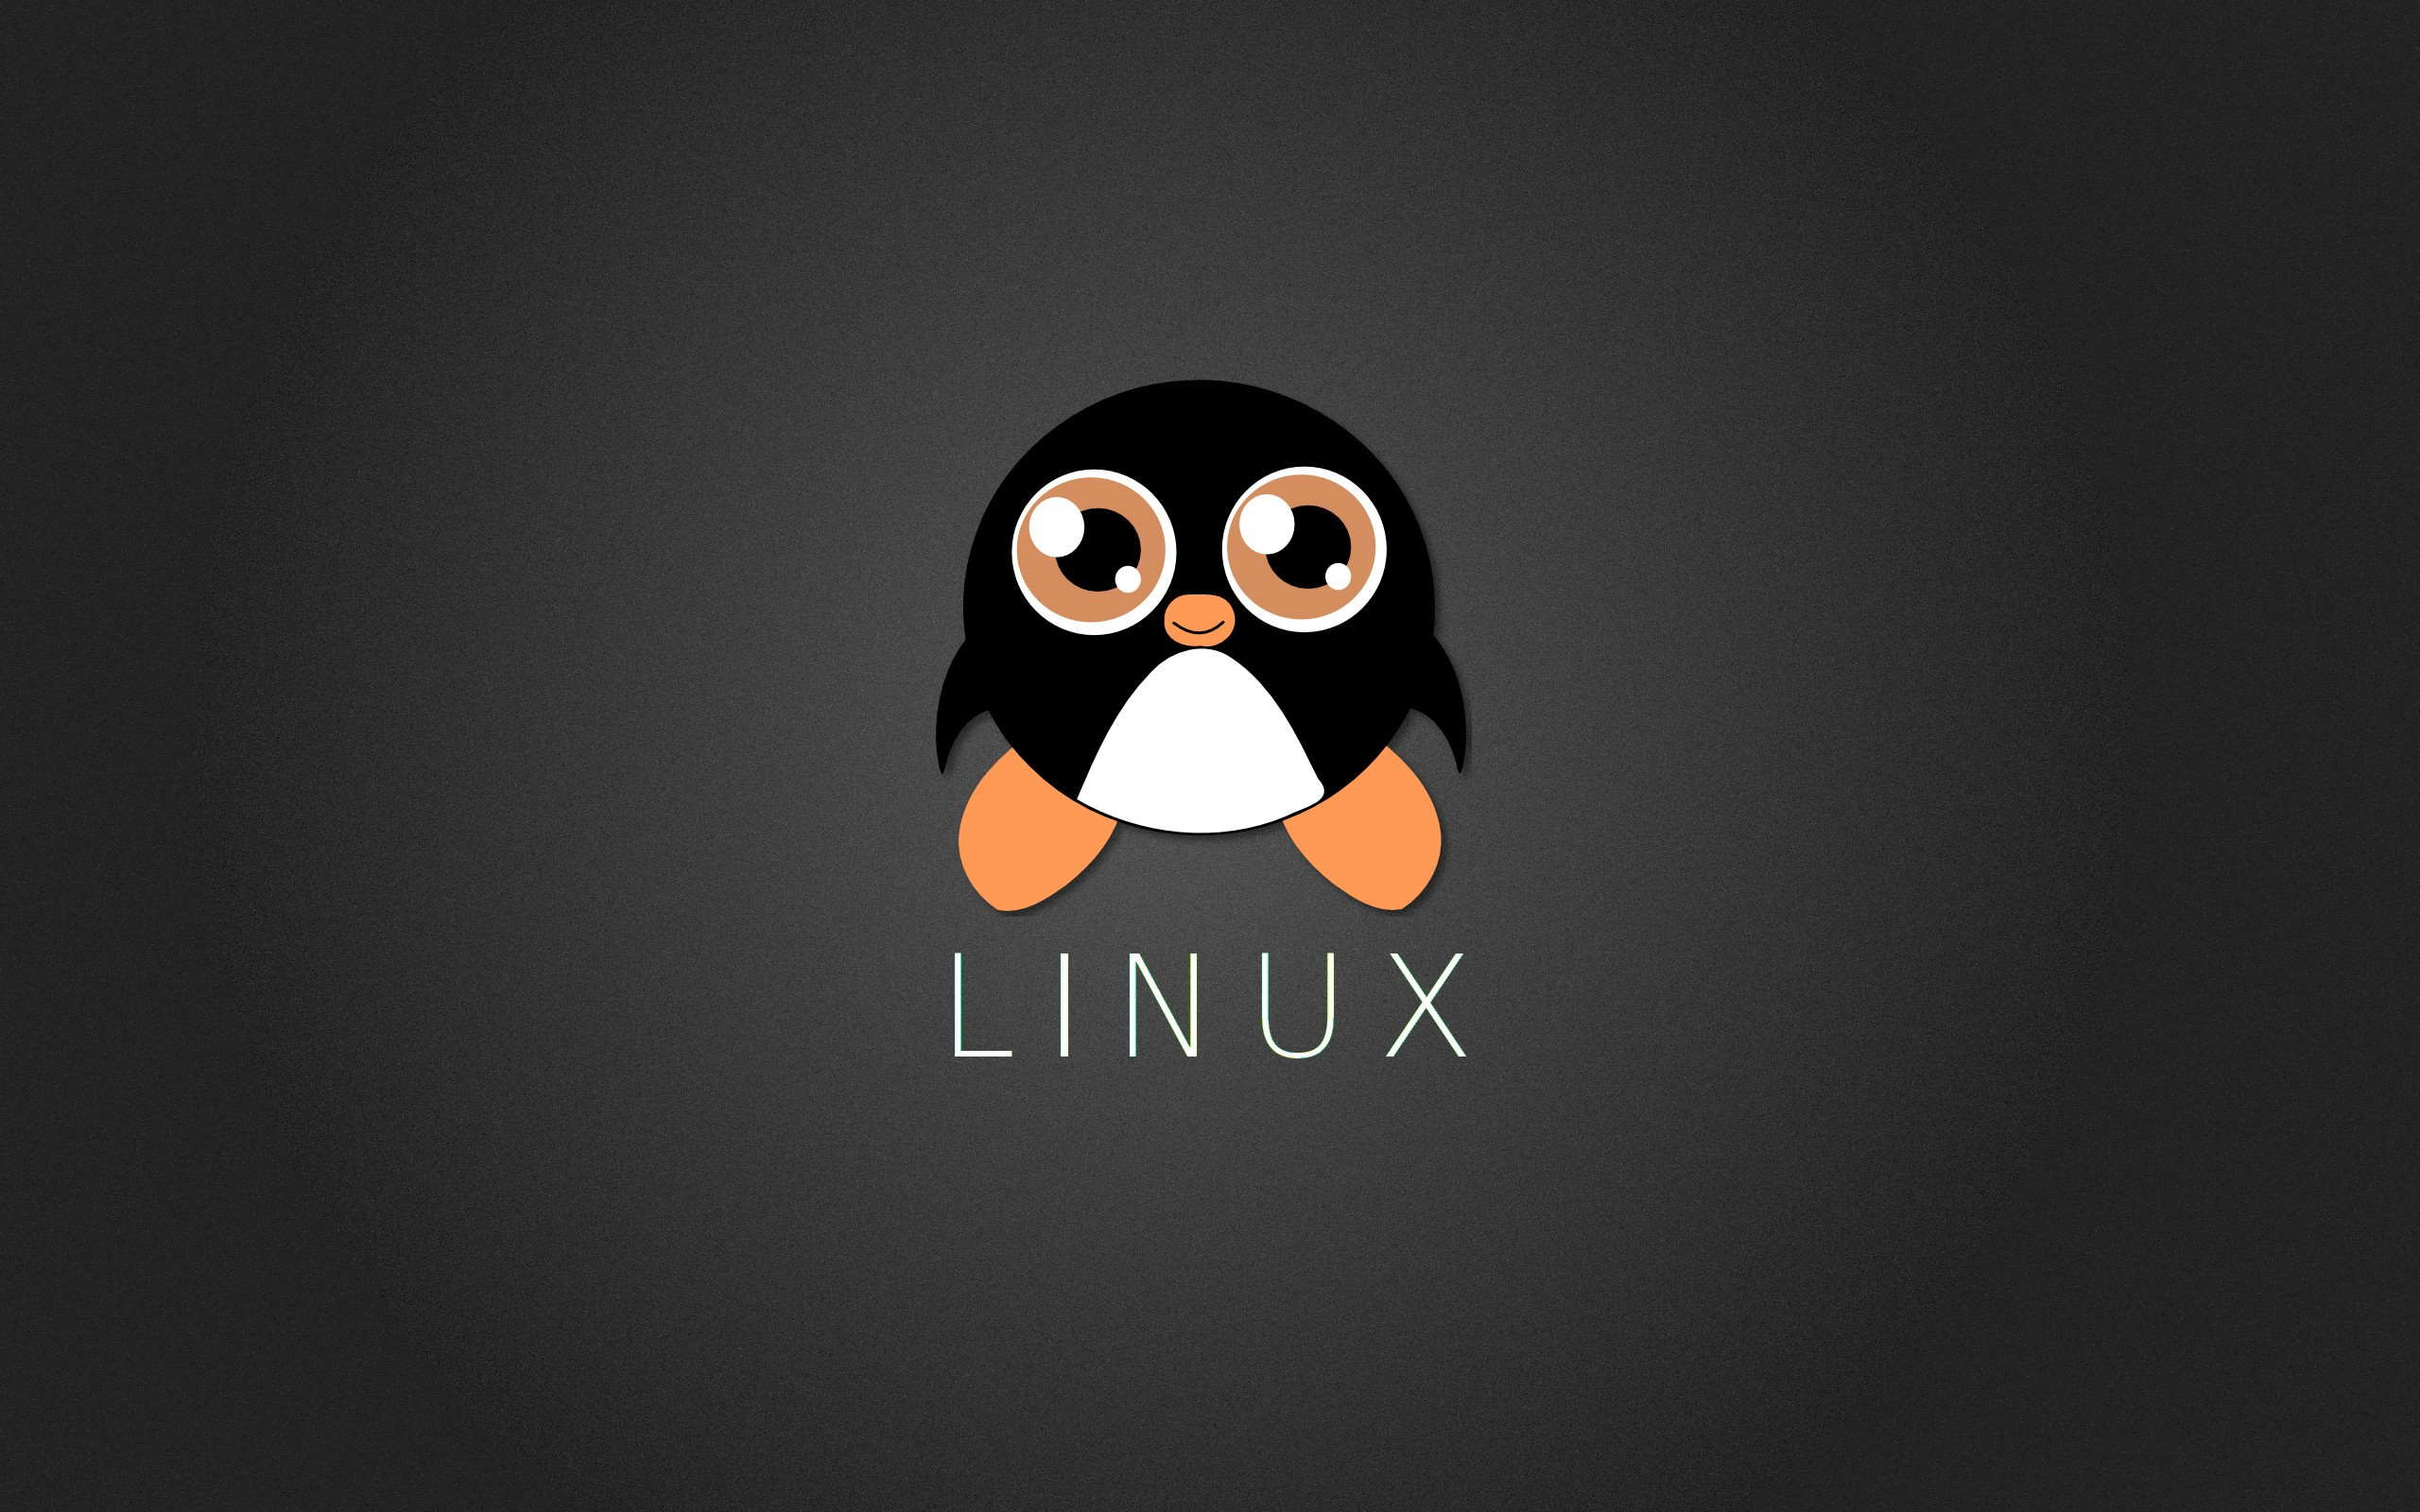 peguin linux hd computer 4k wallpapers images